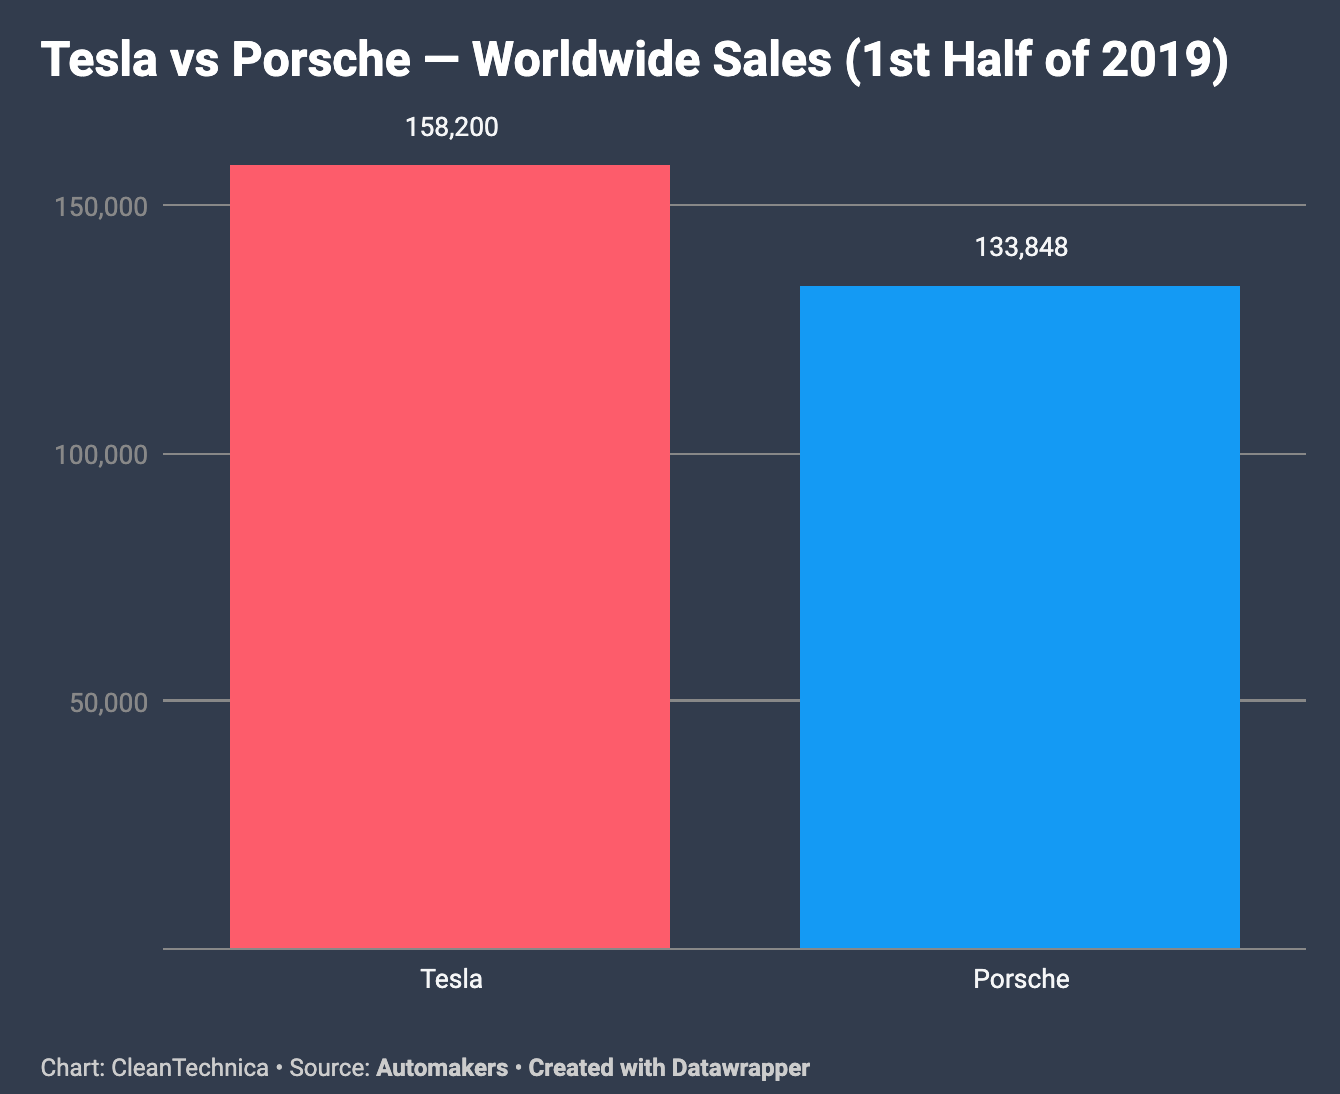 Tesla Outsold Porsche Globally In 1st Half Of 2019